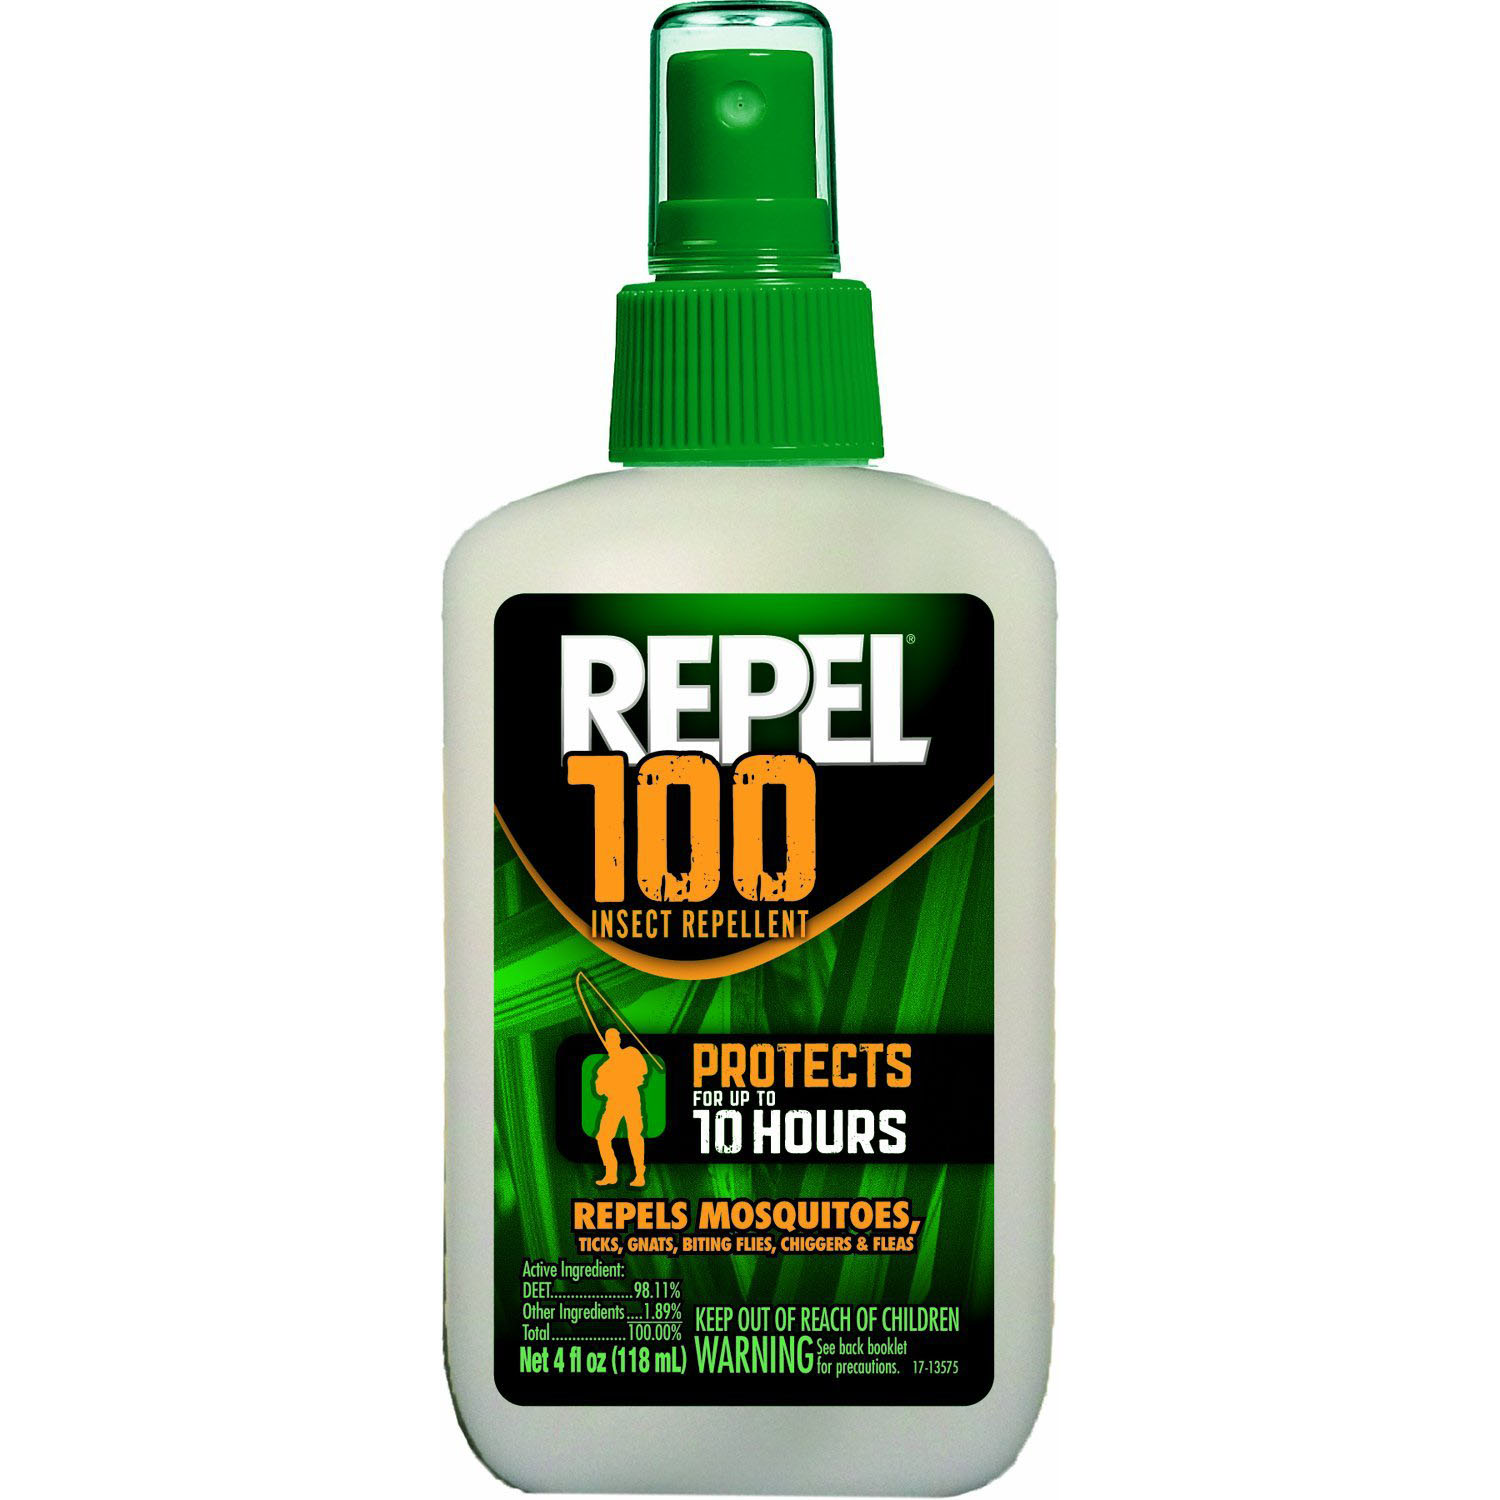 review of related literature for mosquito repellents Mosquitoes, those ruiners of picnics and barbecues, can be hard to escape methods of control seek to prevent mosquitoes from breeding or surviving to adulthood, while some insect repellents can help.